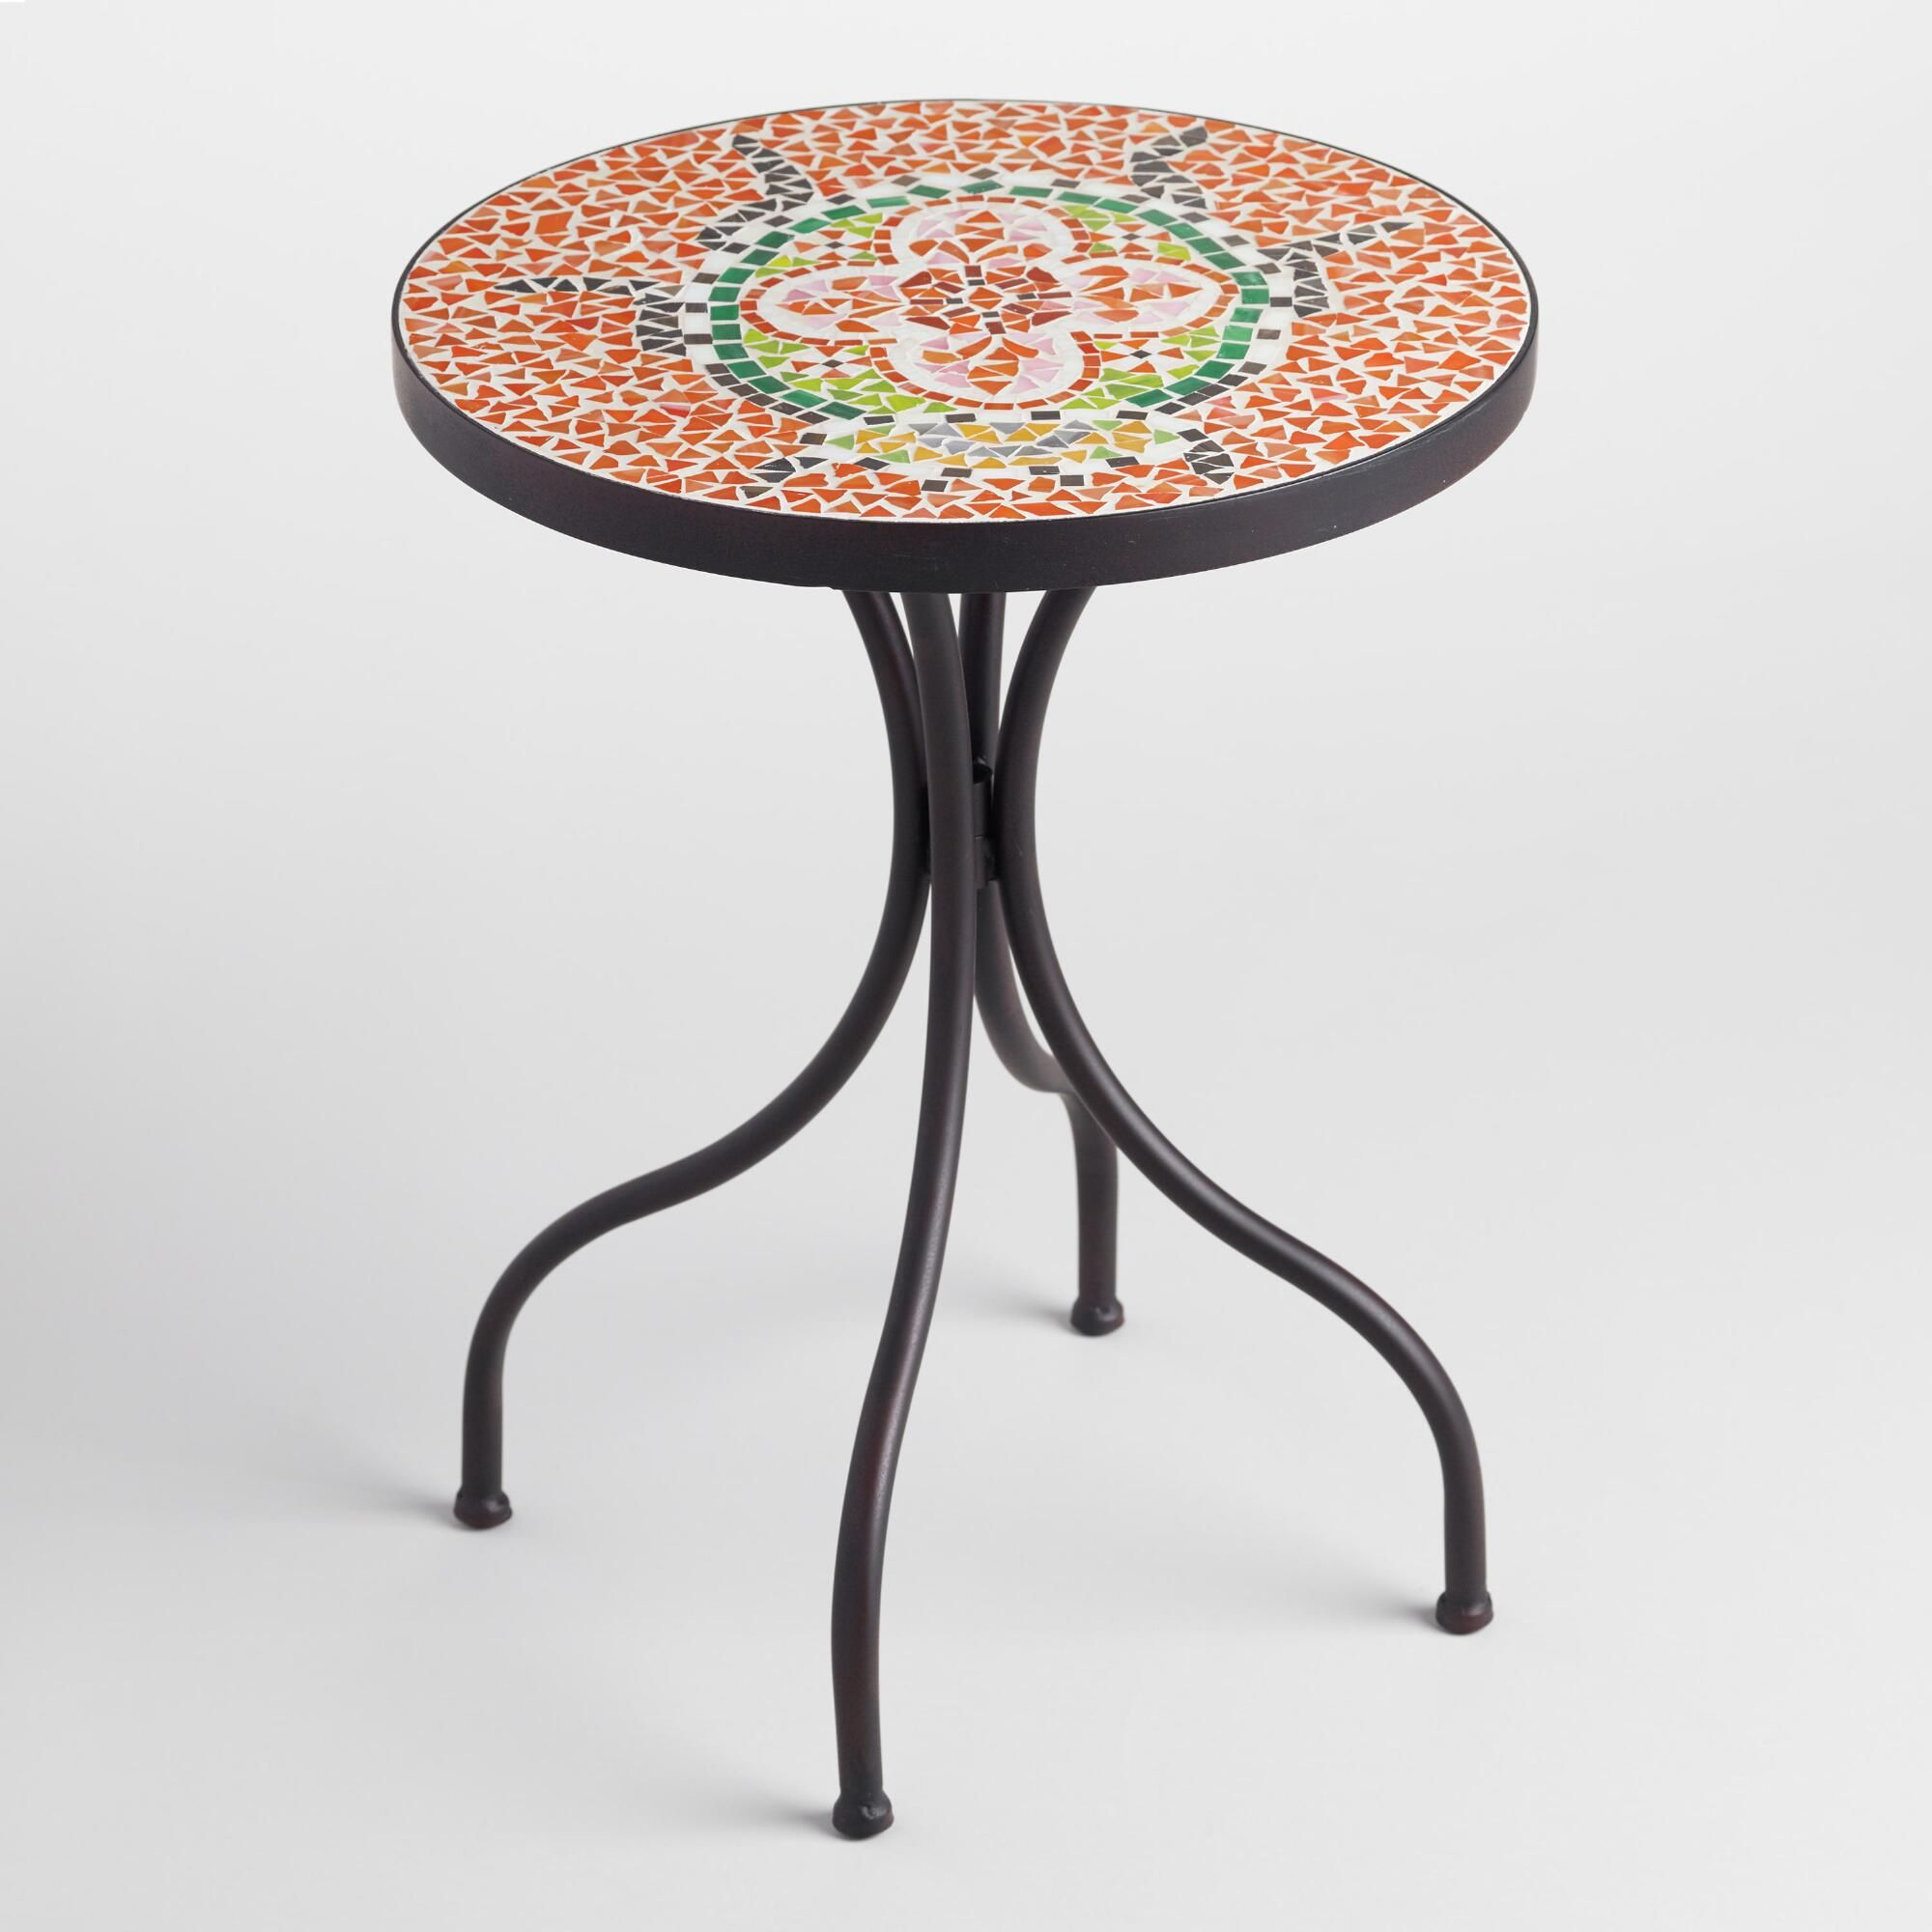 the balcony garden our exclusive side table brings mosaic tile outdoor accent pop west elm white runner wood and metal storage units inexpensive patio furniture sets tall bistro